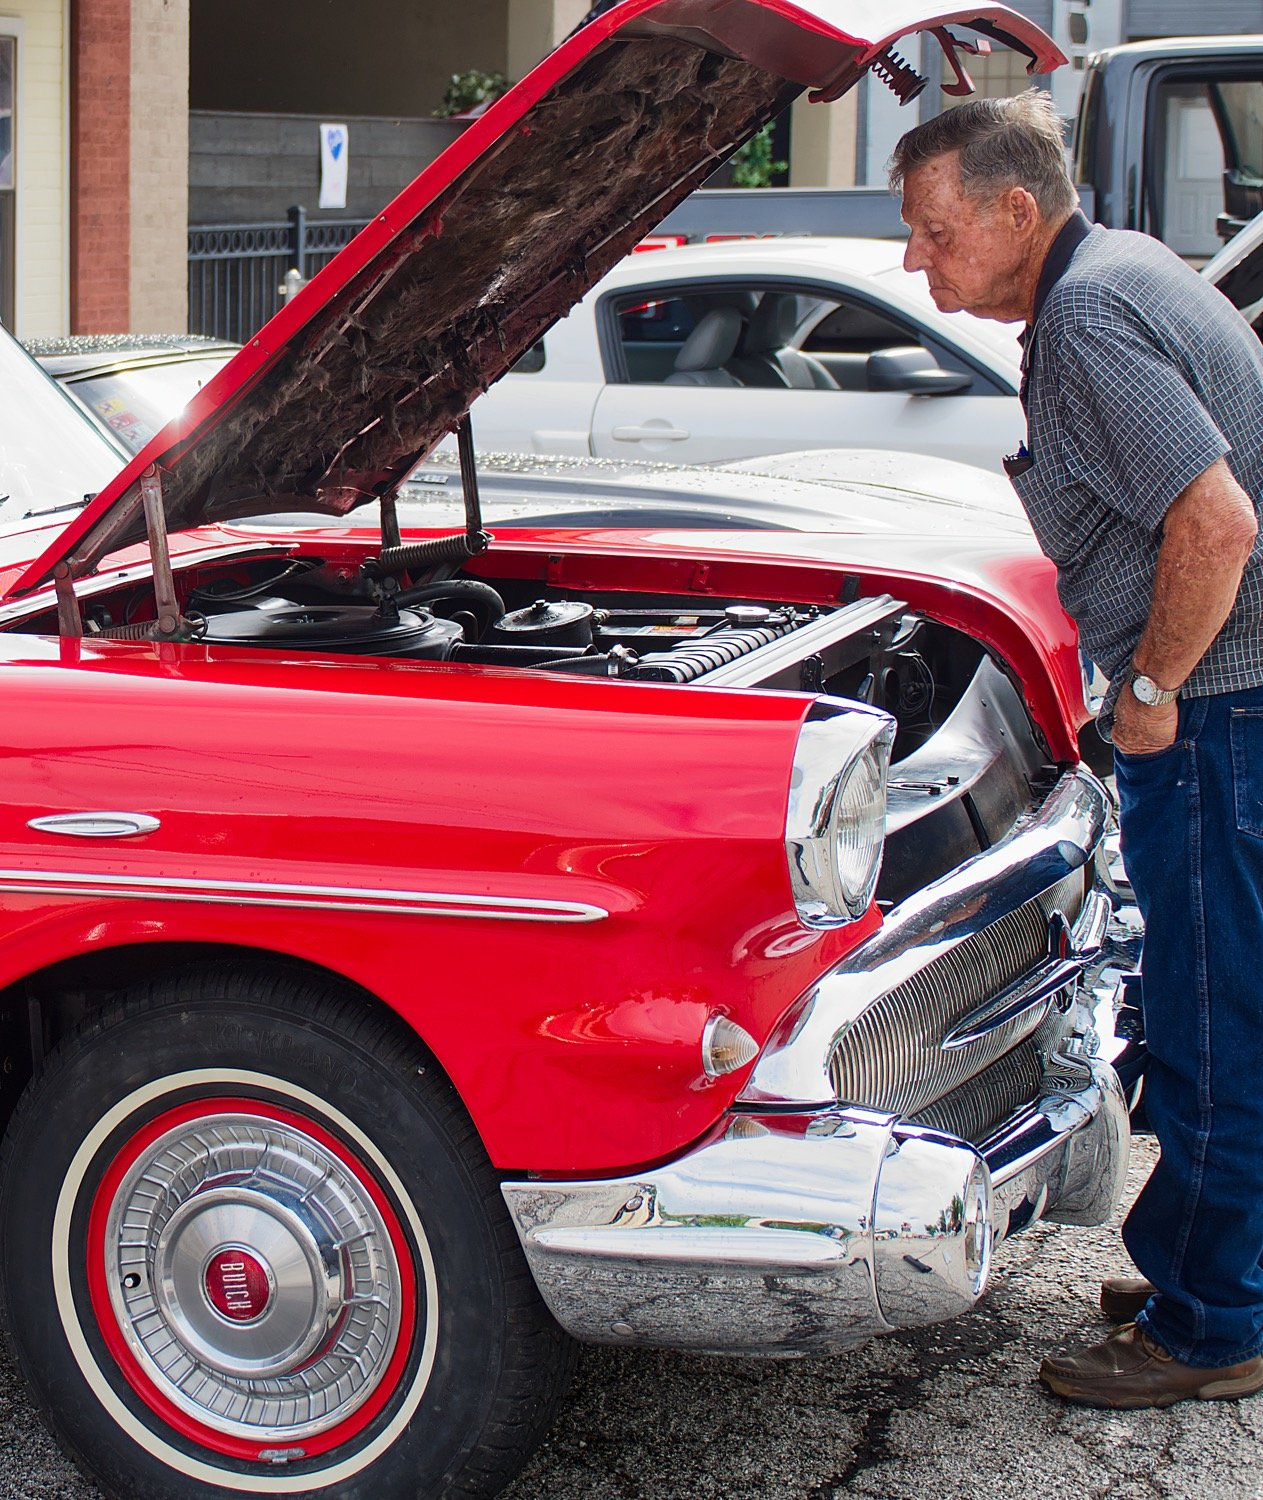 A 1957 Buick Roadmaster drew attention Saturday morning at the car show in Quitman.